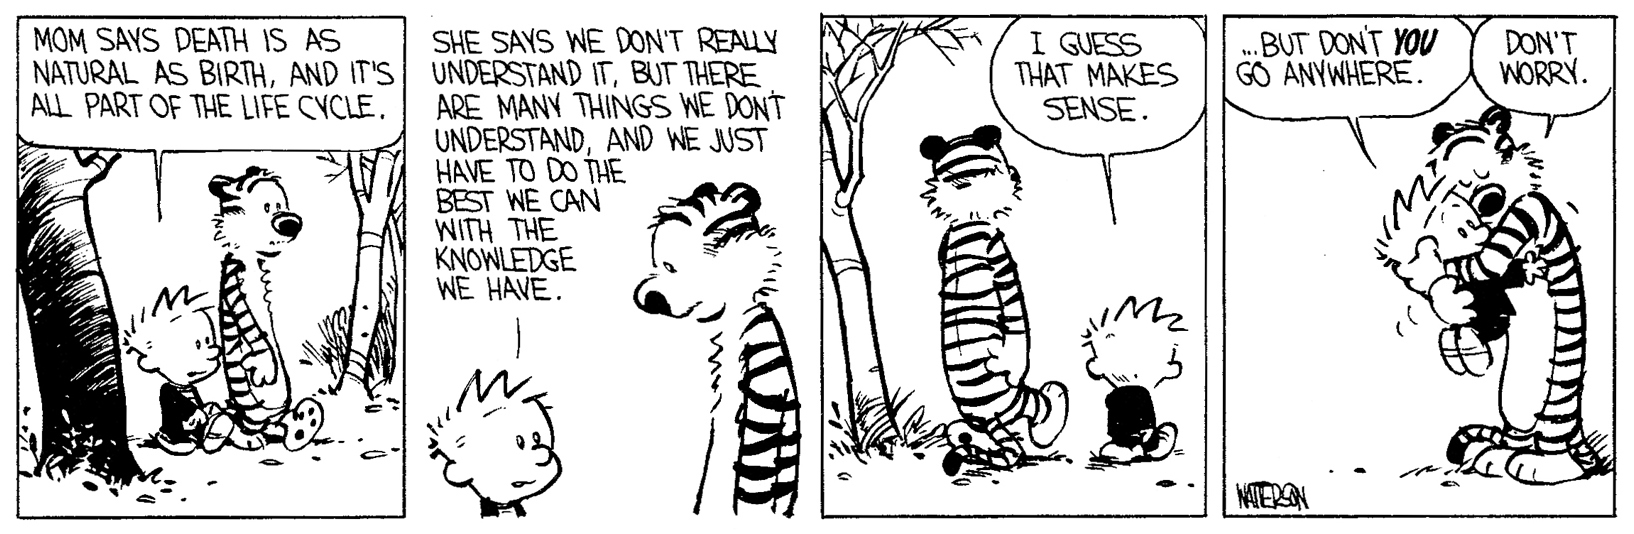 But Don T You Go Anywhere Calvin And Hobbes Calvin And Hobbes Best Calvin And Hobbes Calvin And Hobbes Comics